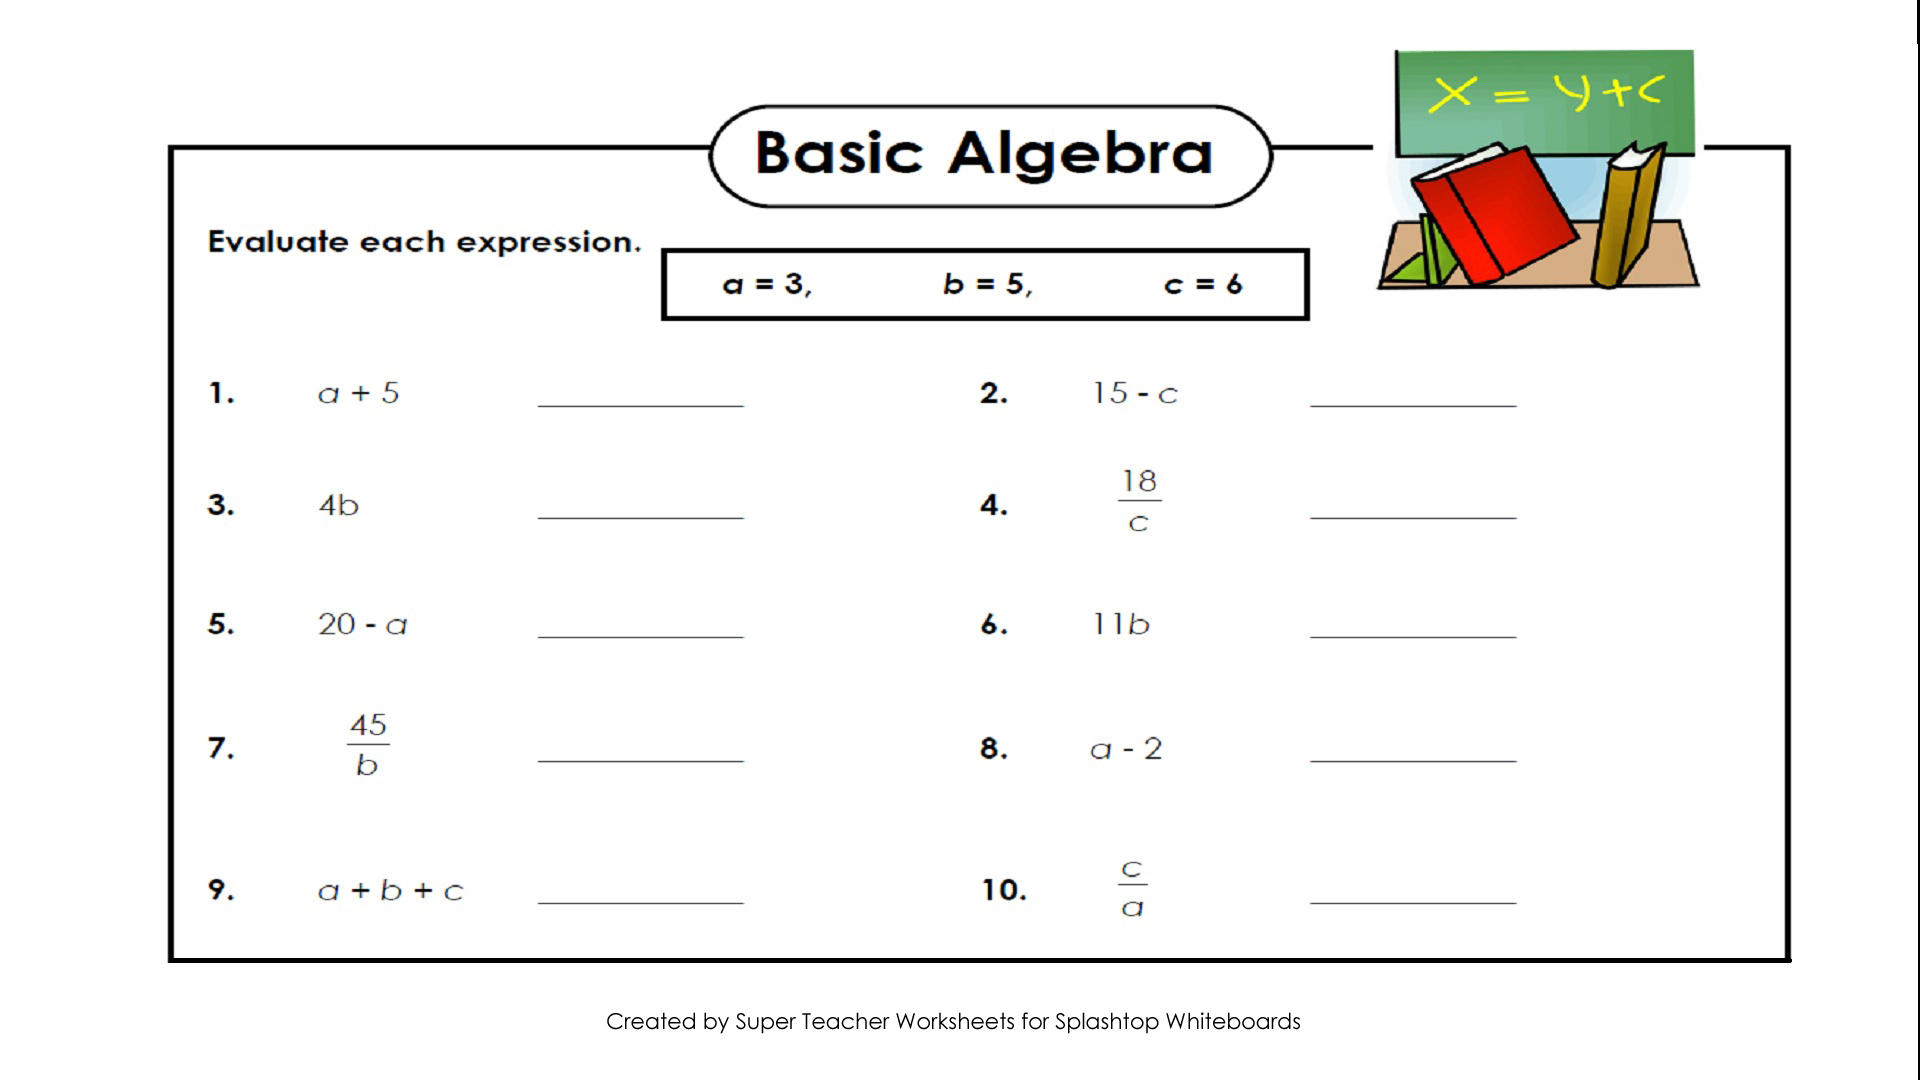 Printables Super Teacher Worksheets Answers splashtop whiteboard background graphics algebra basic